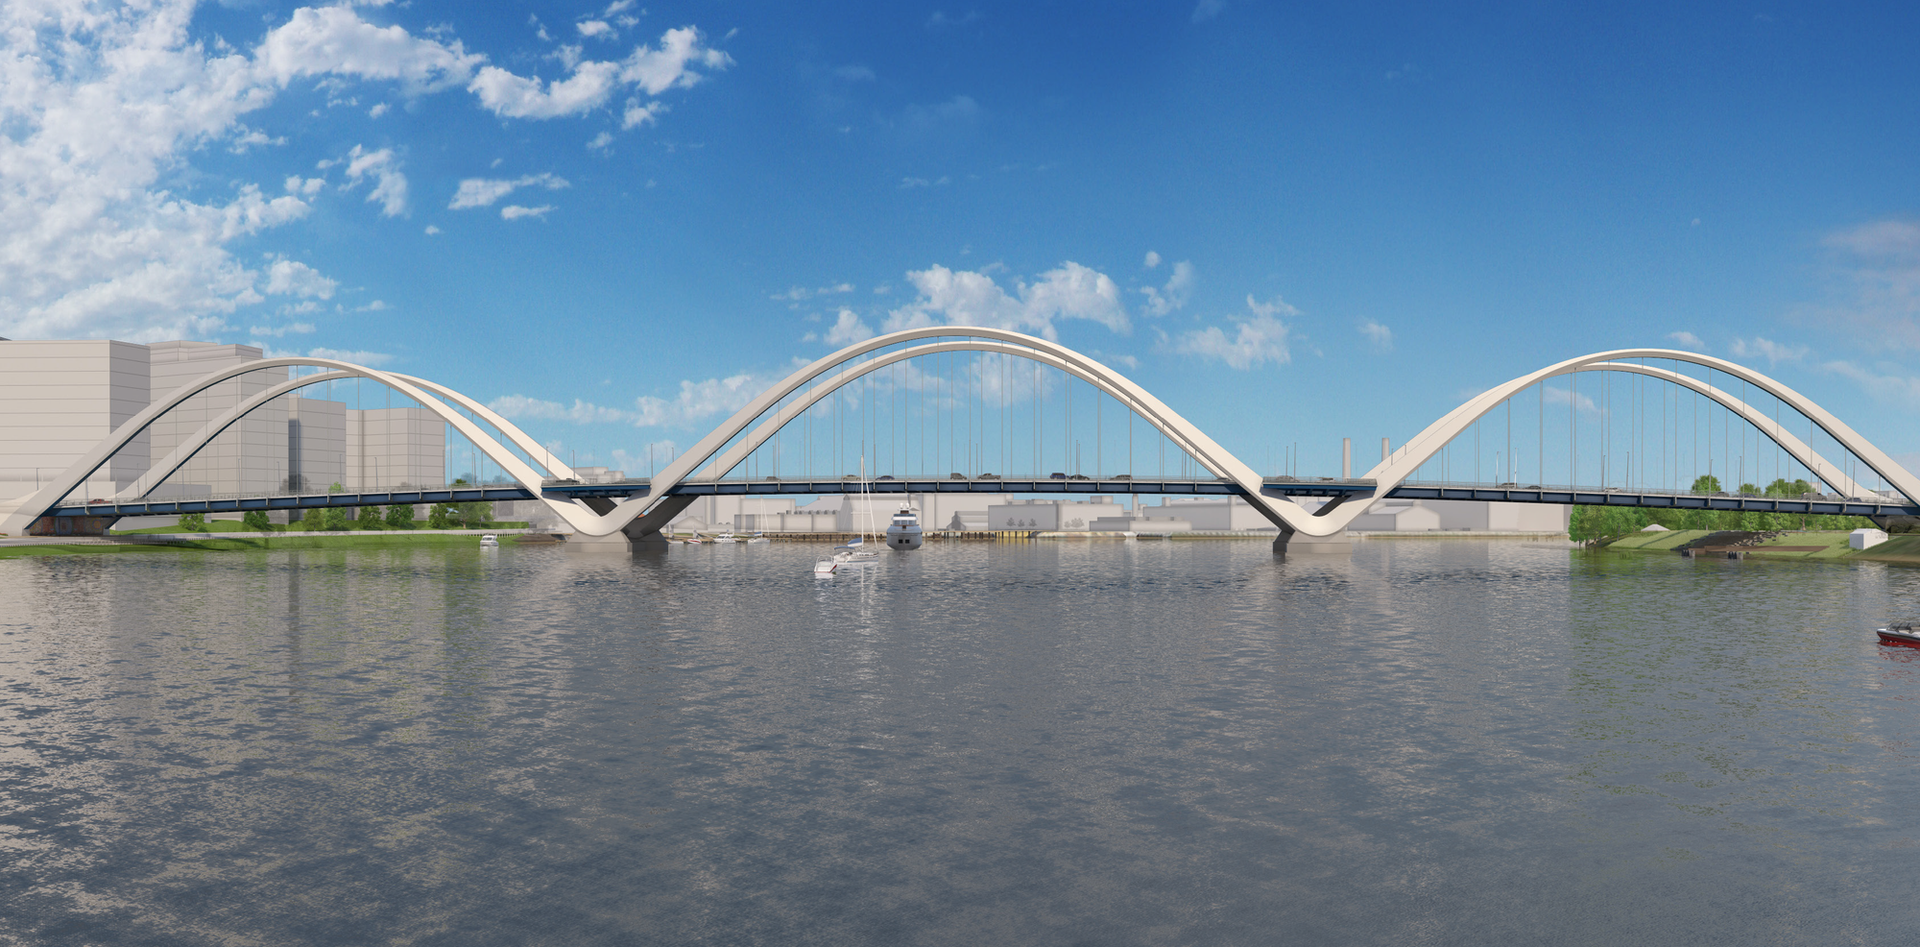 Design illustration of the new Frederick Douglass Memorial Bridge.